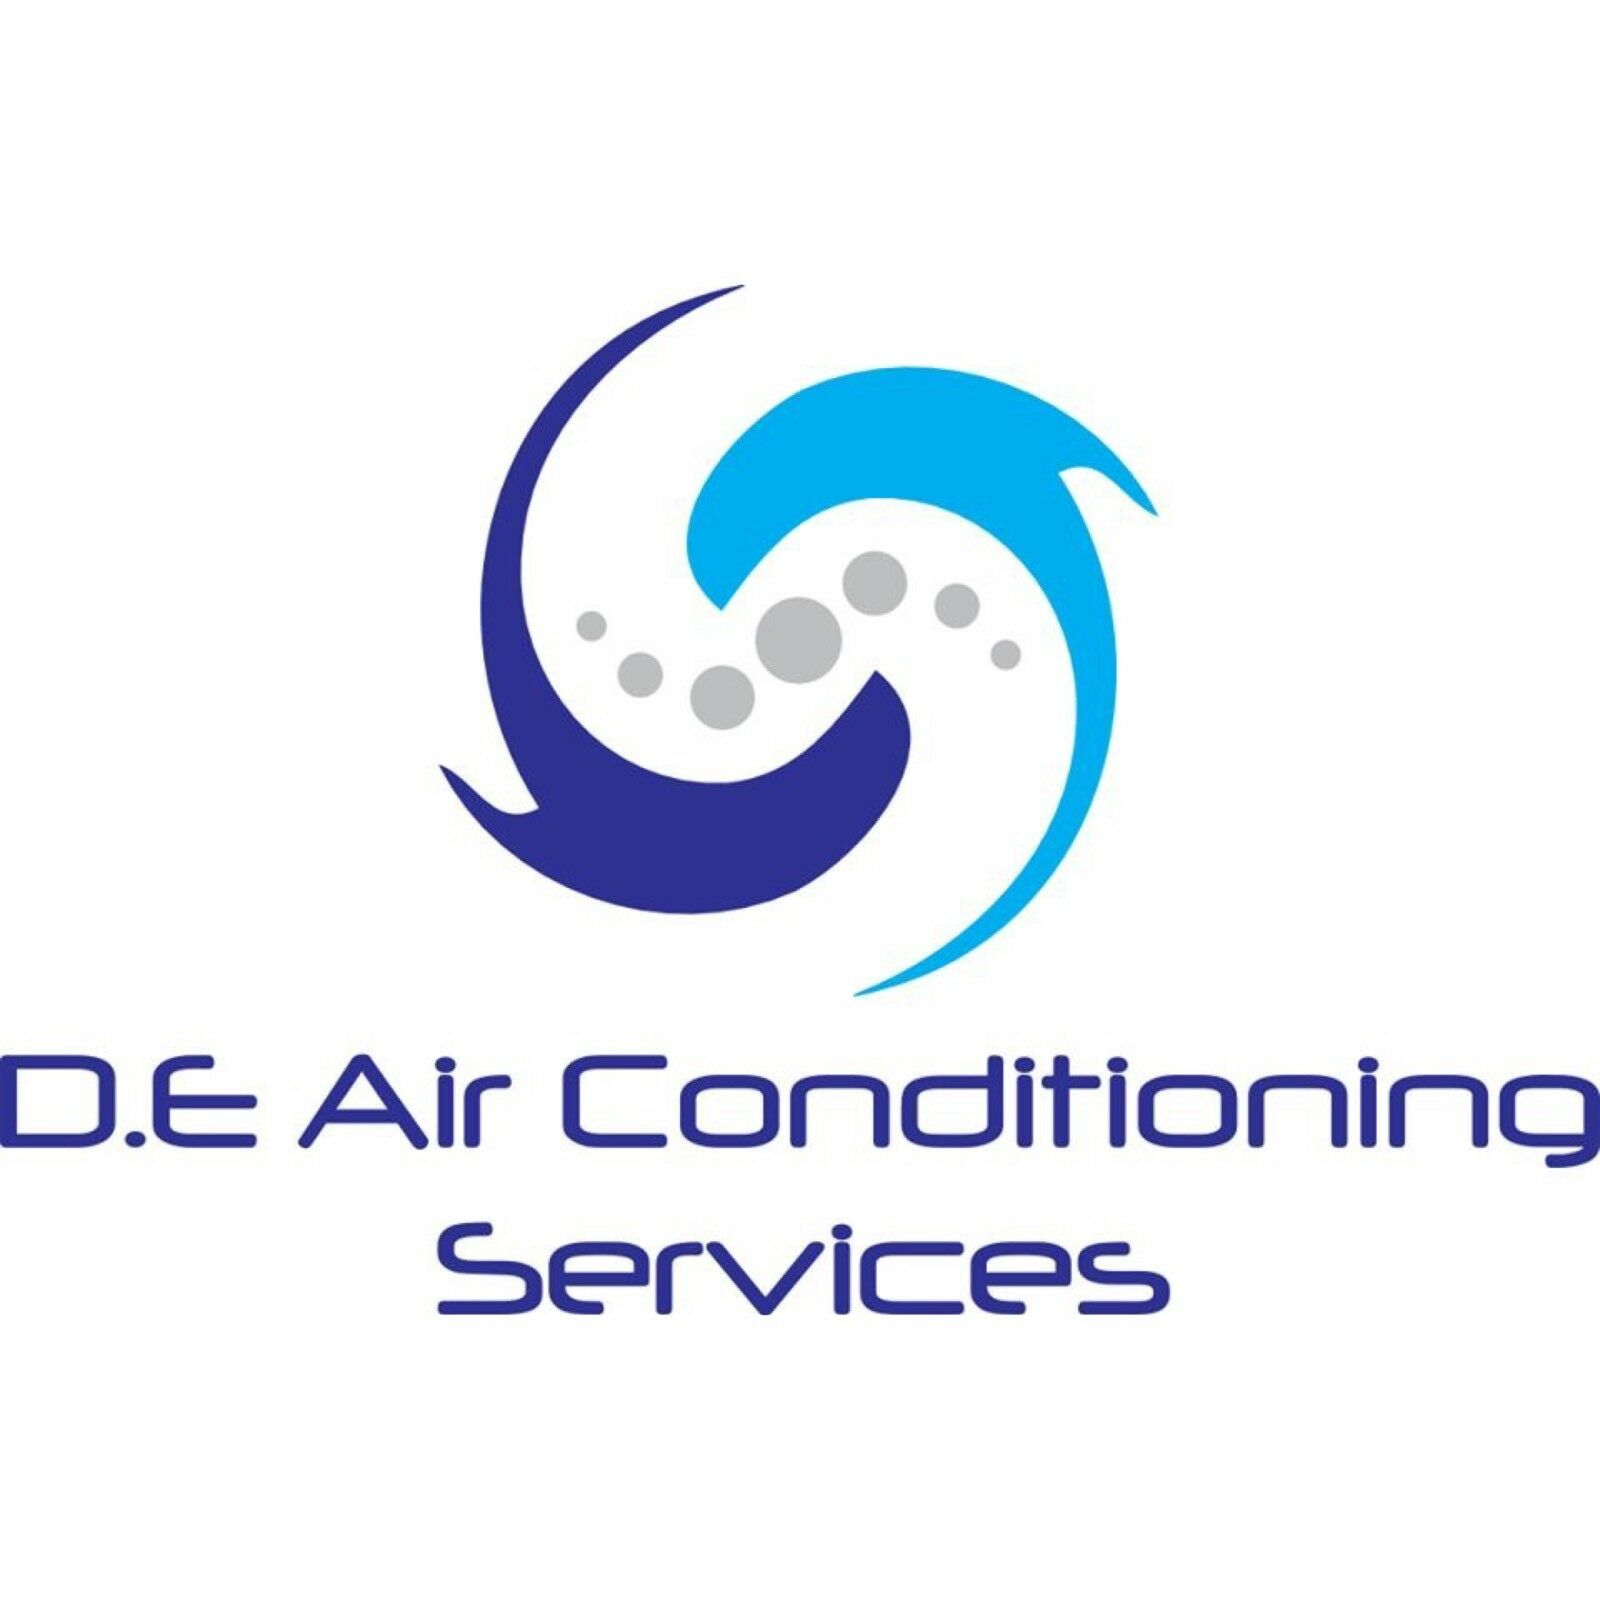 D e air conditioning services air conditioning heating gumtree australia wollongong area wollongong 1177281915